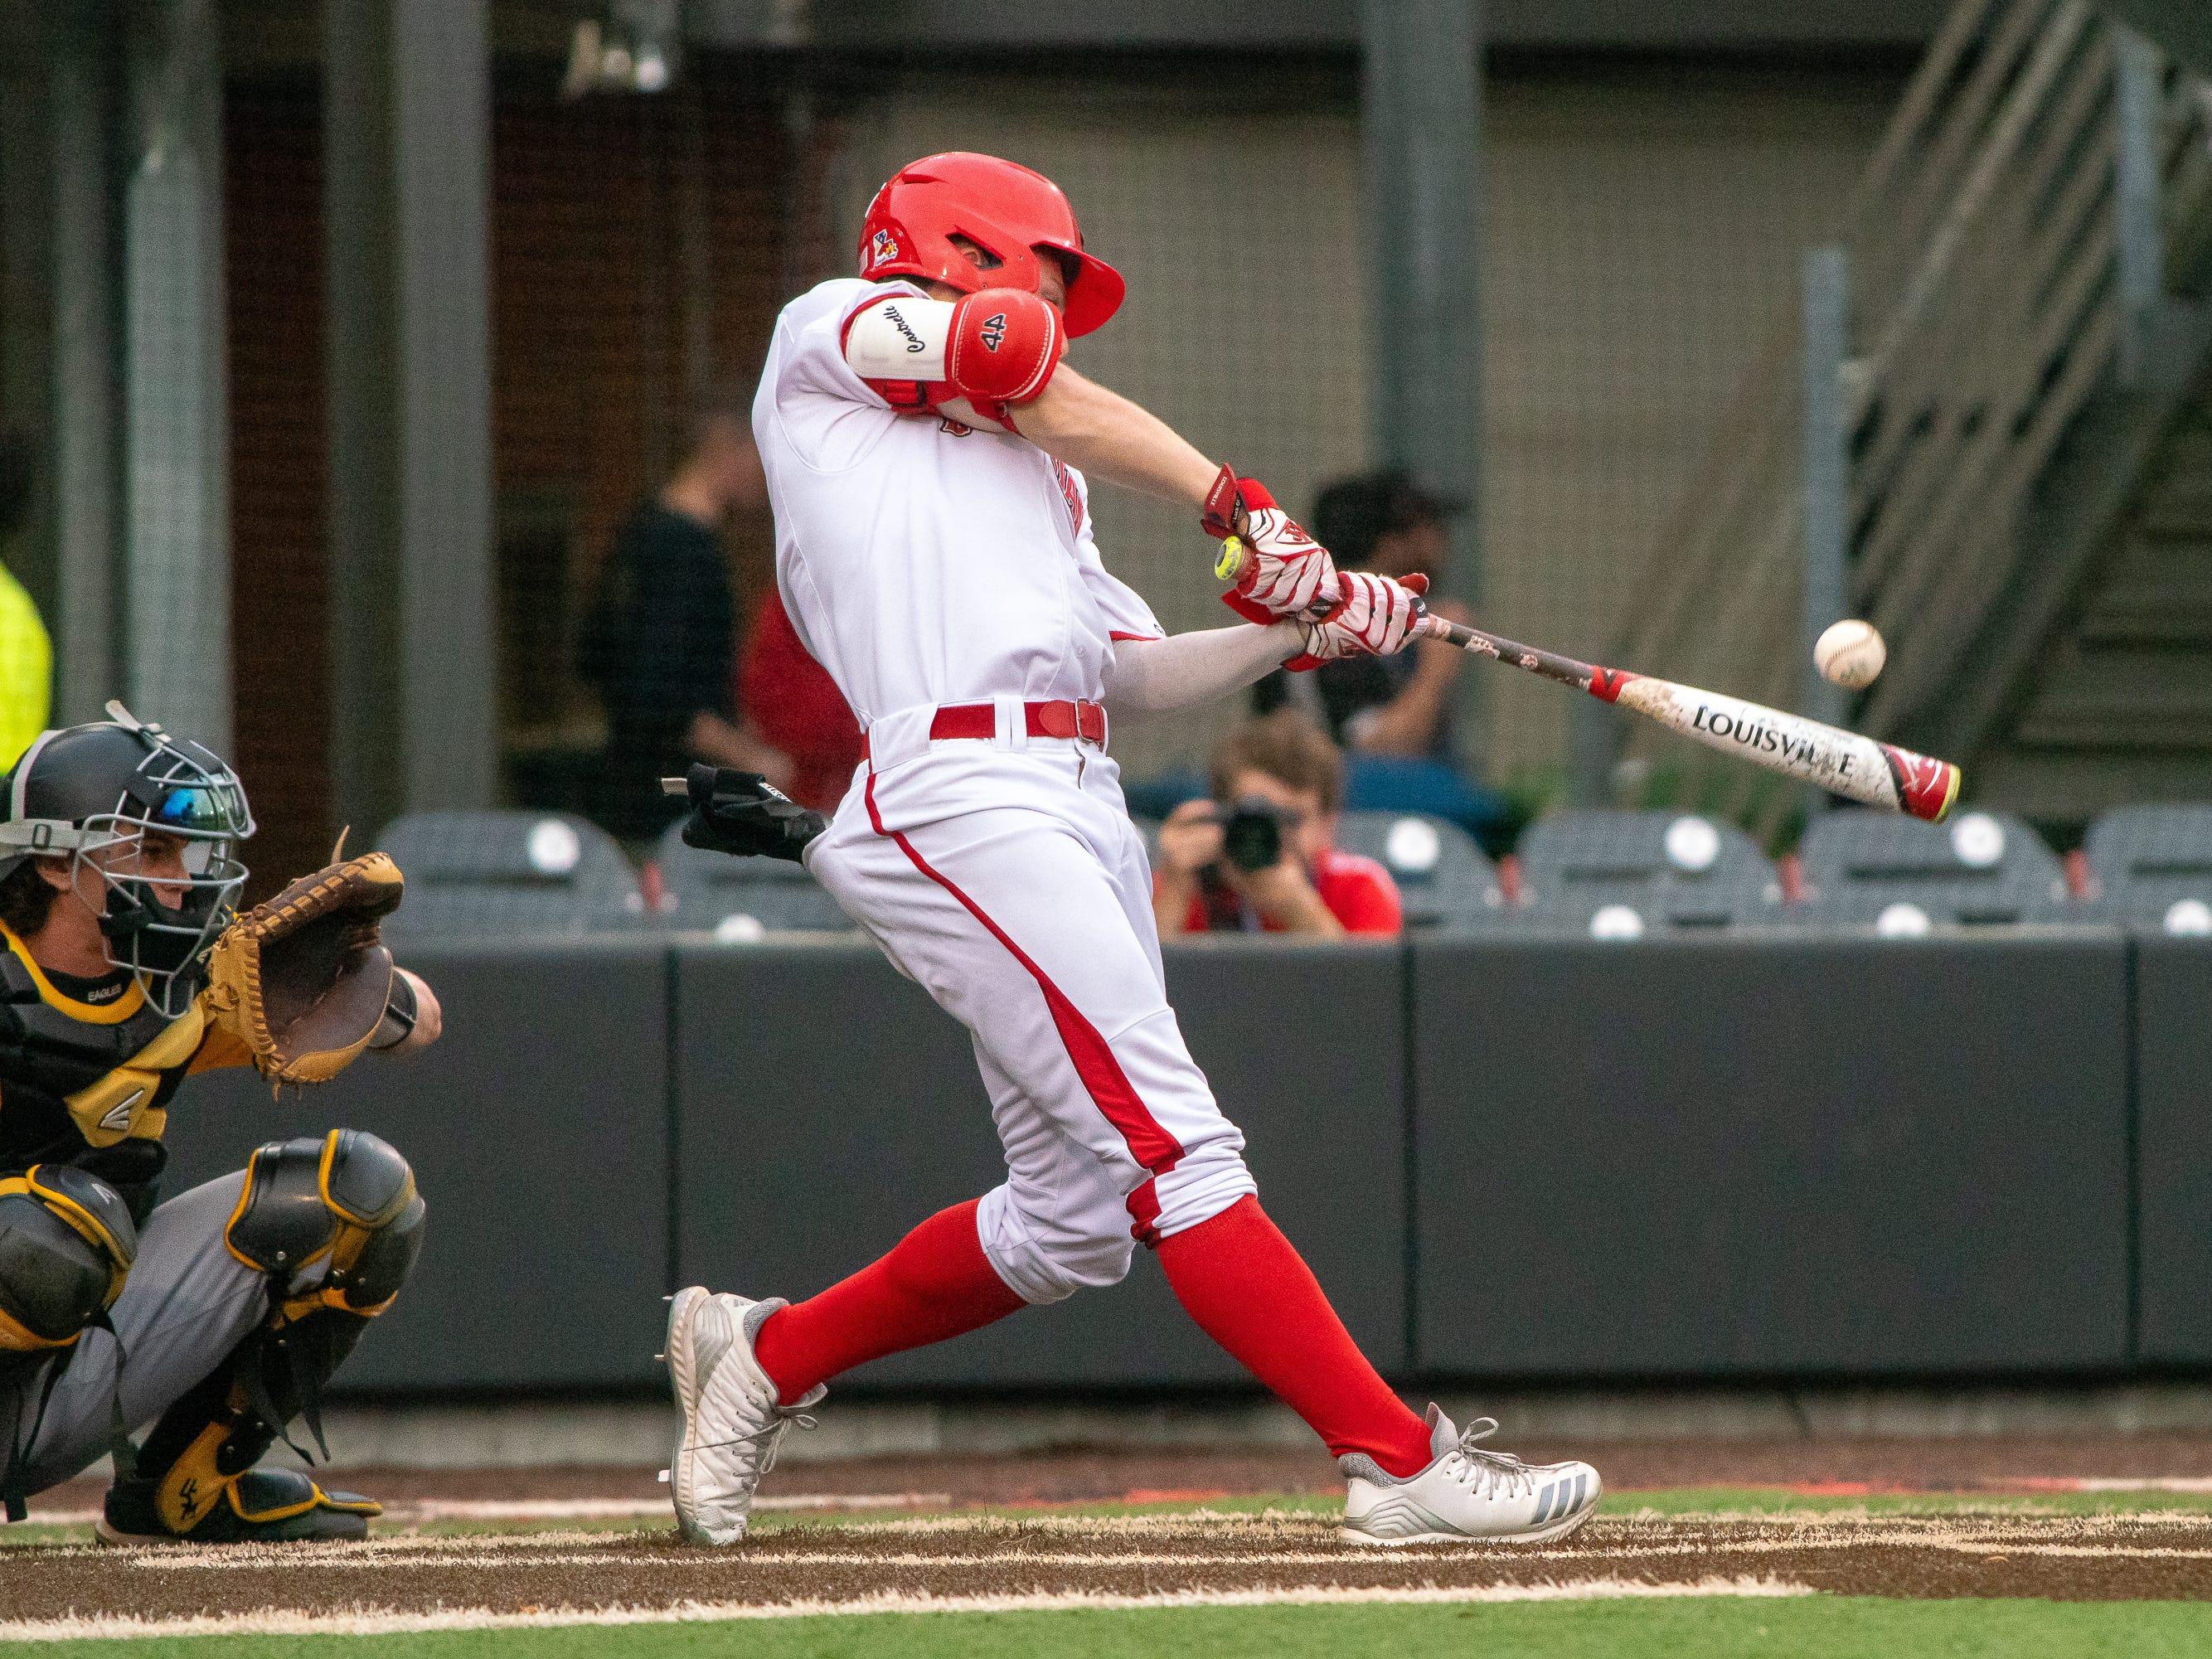 """UL's Hayden Cantrelle hits the incoming pitch as the Ragin' Cajuns take on the Southern Miss Golden Eagles at M.L. """"Tigue"""" Moore Field on Wednesday, March 13, 2019."""